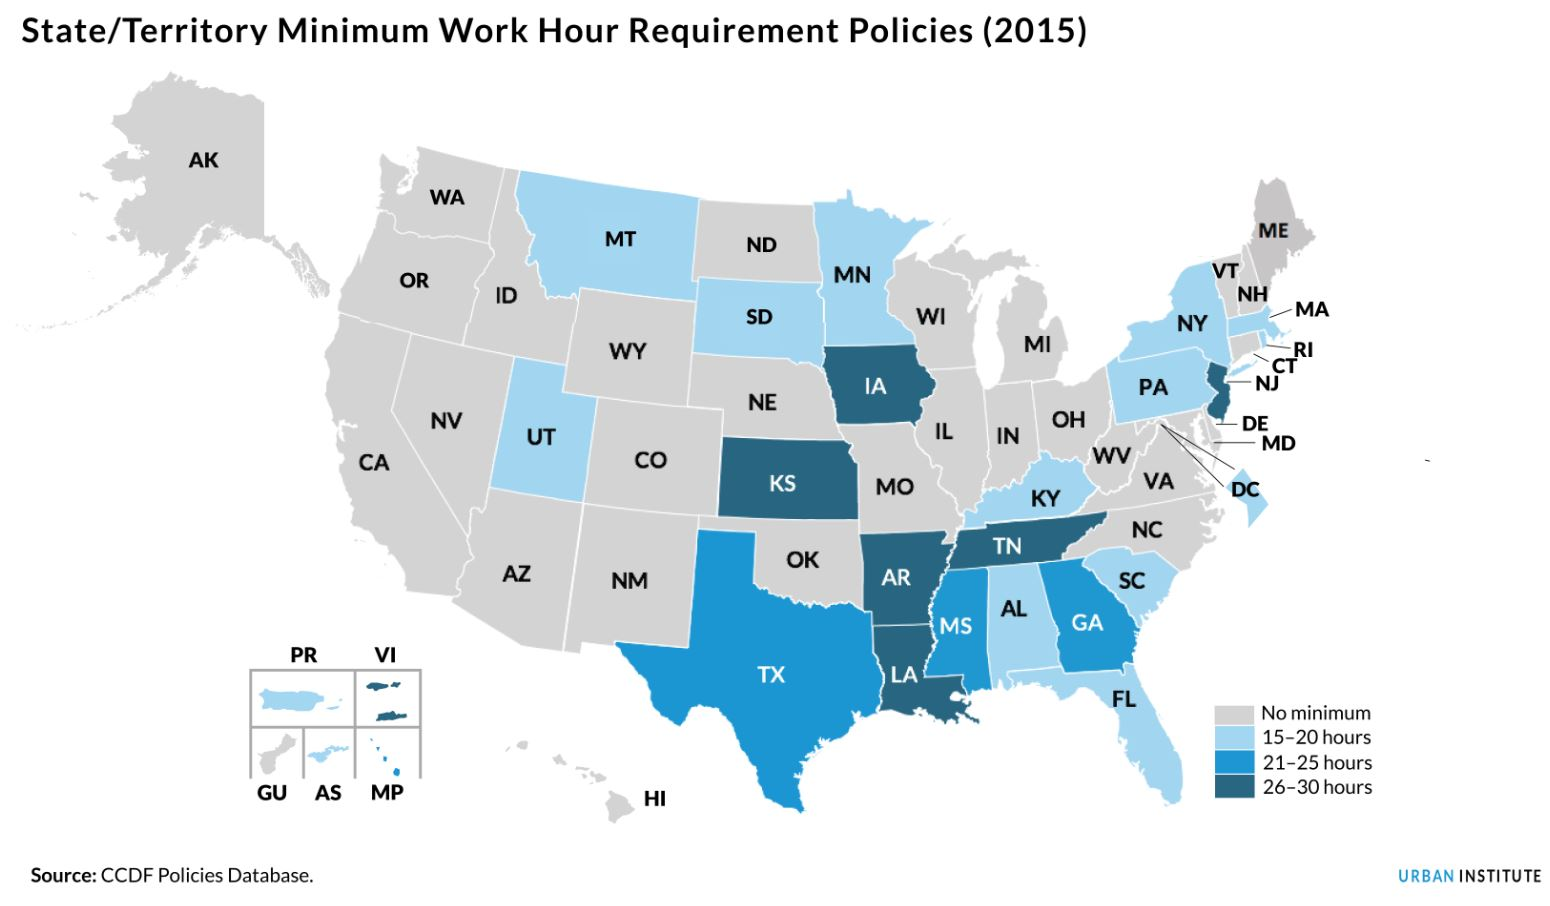 state minimum work hour requirement policies